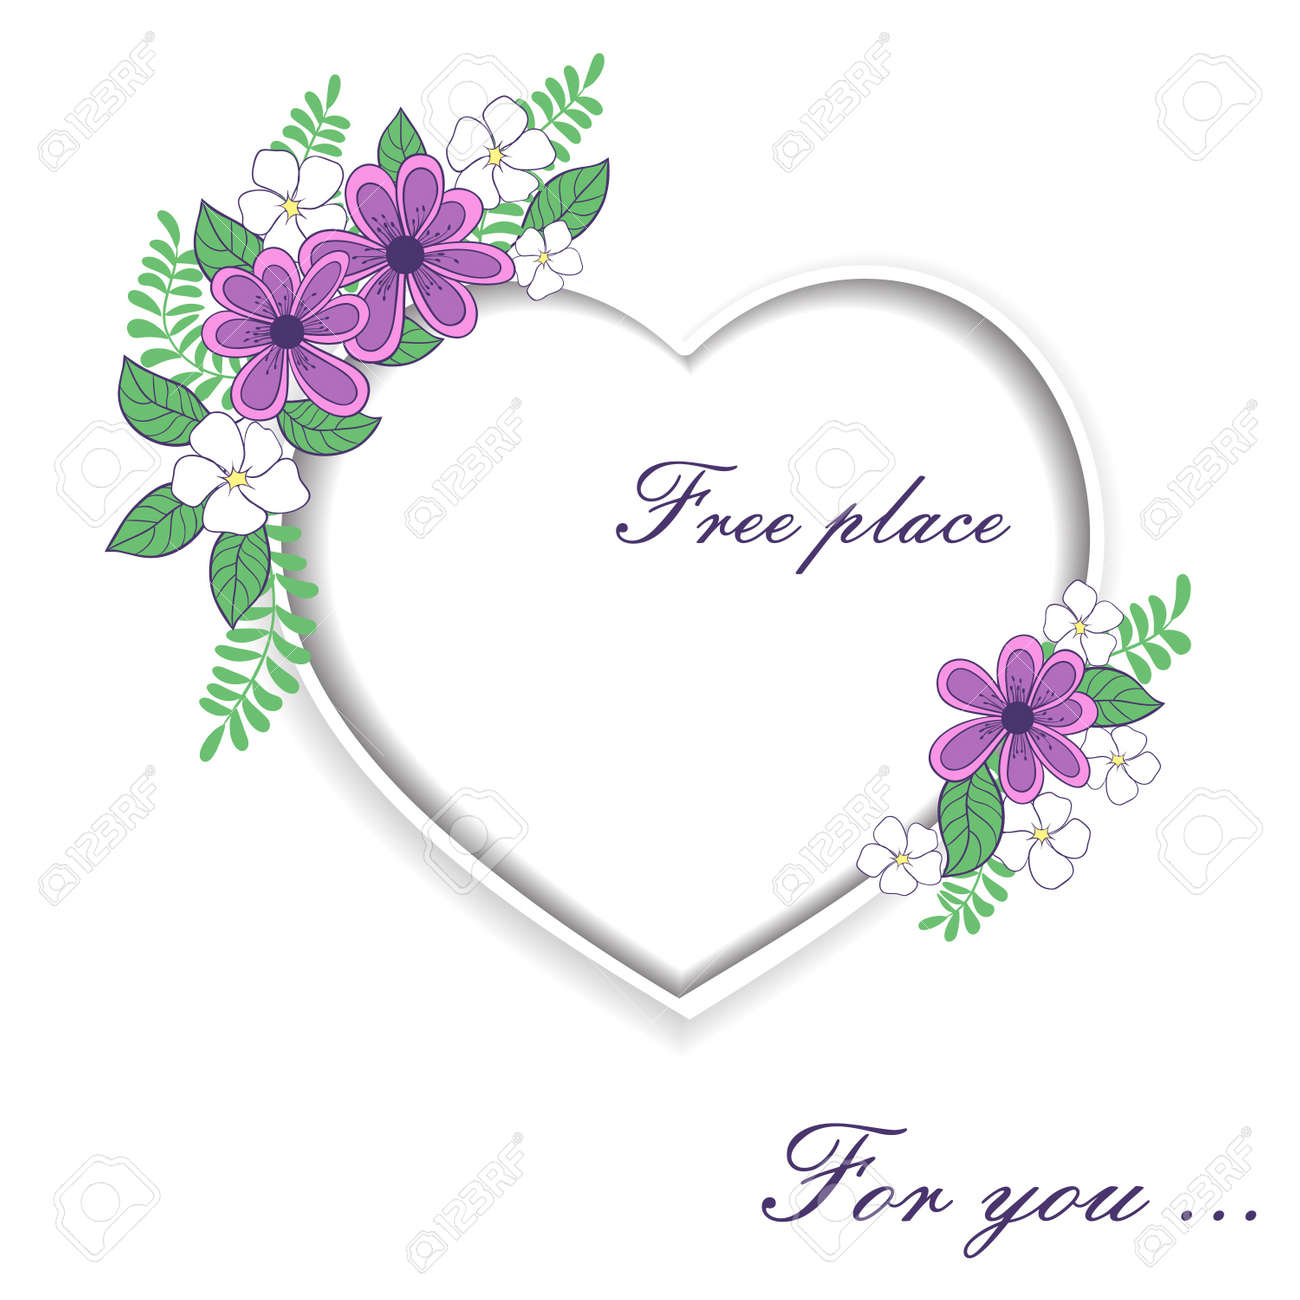 Heart Of Roses With Space For Text Royalty Free Cliparts, Vectors ...